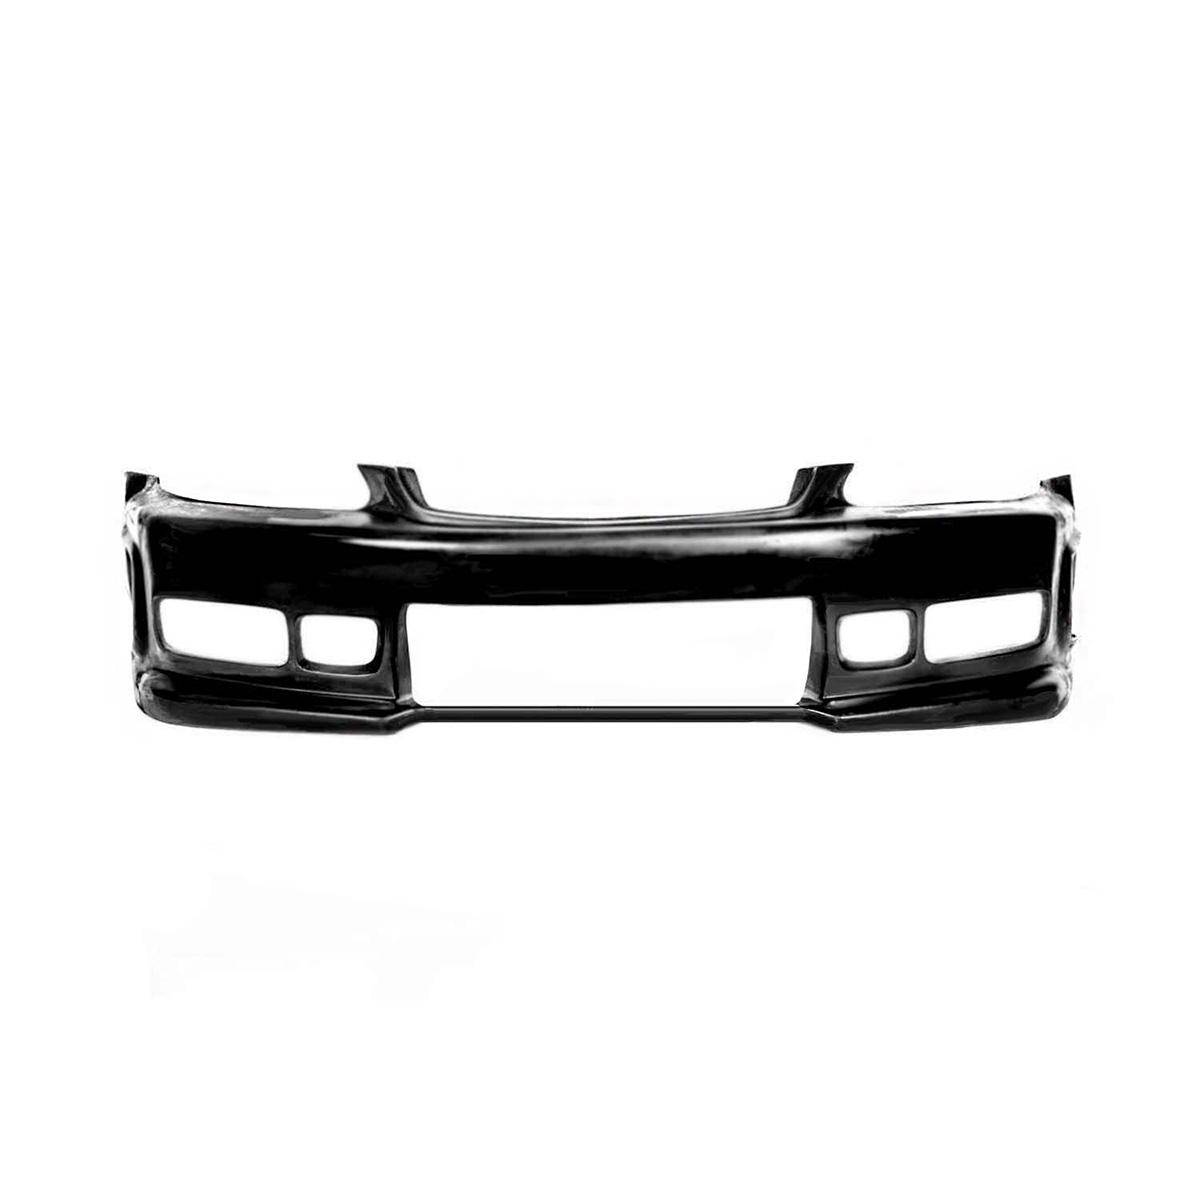 Honda Civic ALL 1999-2000 BW Spec Style 1 Piece Polyurethane Front Bumper